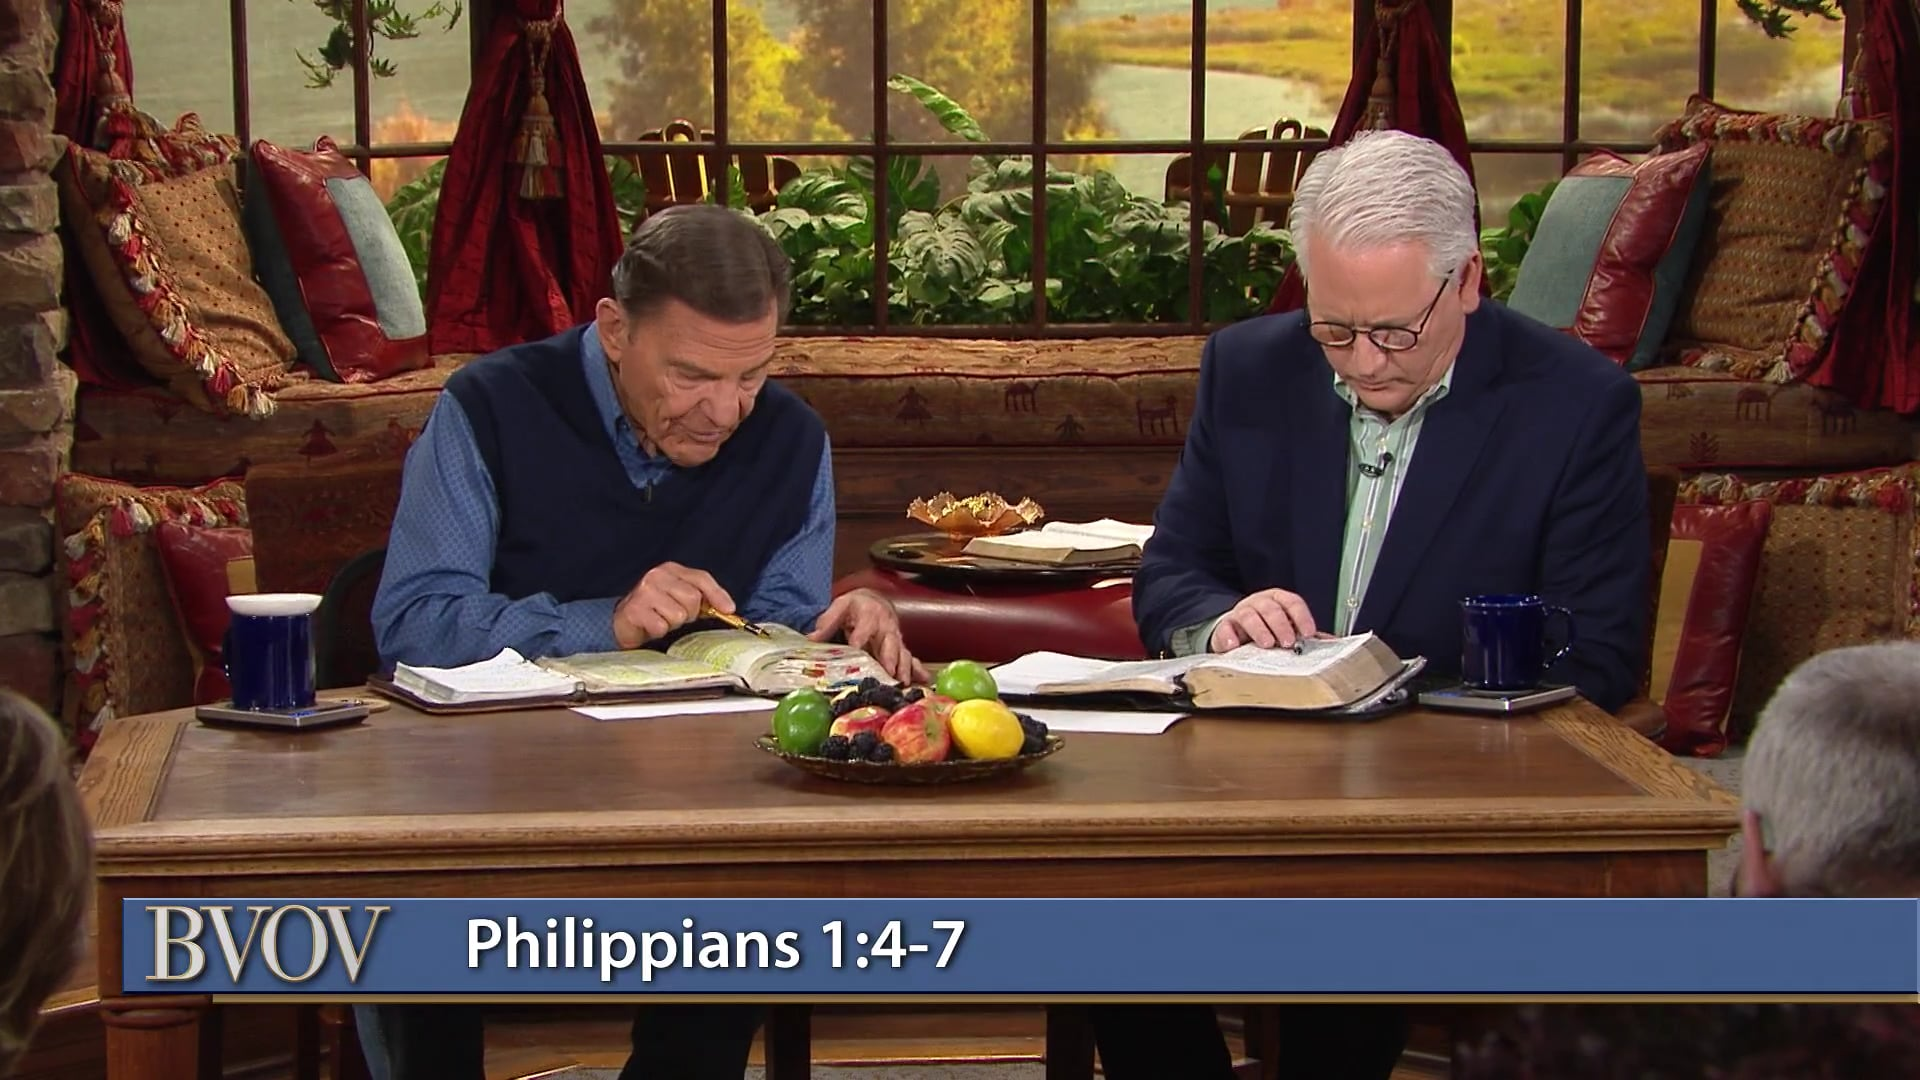 Join Kenneth Copeland and Professor Greg Stephens on Believer's Voice of Victory as they explain why God is your Covenant Partner. He'll step in whenever you need Him and take over where you leave off. That's His part of the covenant. Your part is to pray and obey!